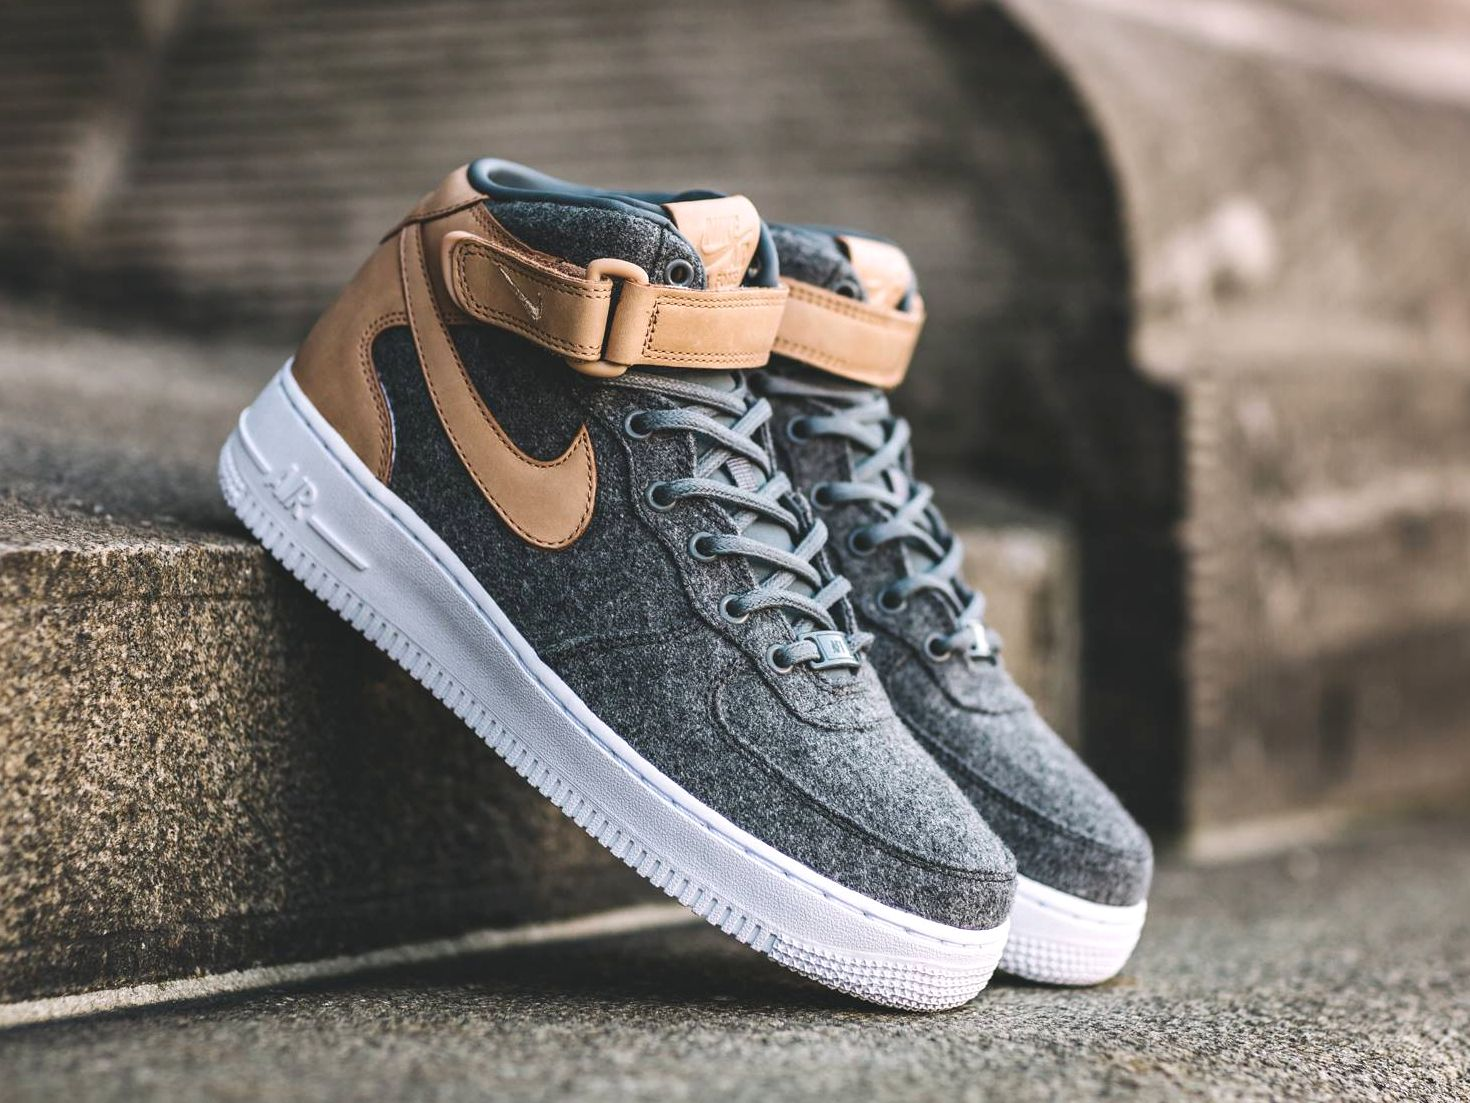 4730cdd82 avis-basket-nike-wmns-air-force-1-07-mid-leather-wool-oatmeal ...